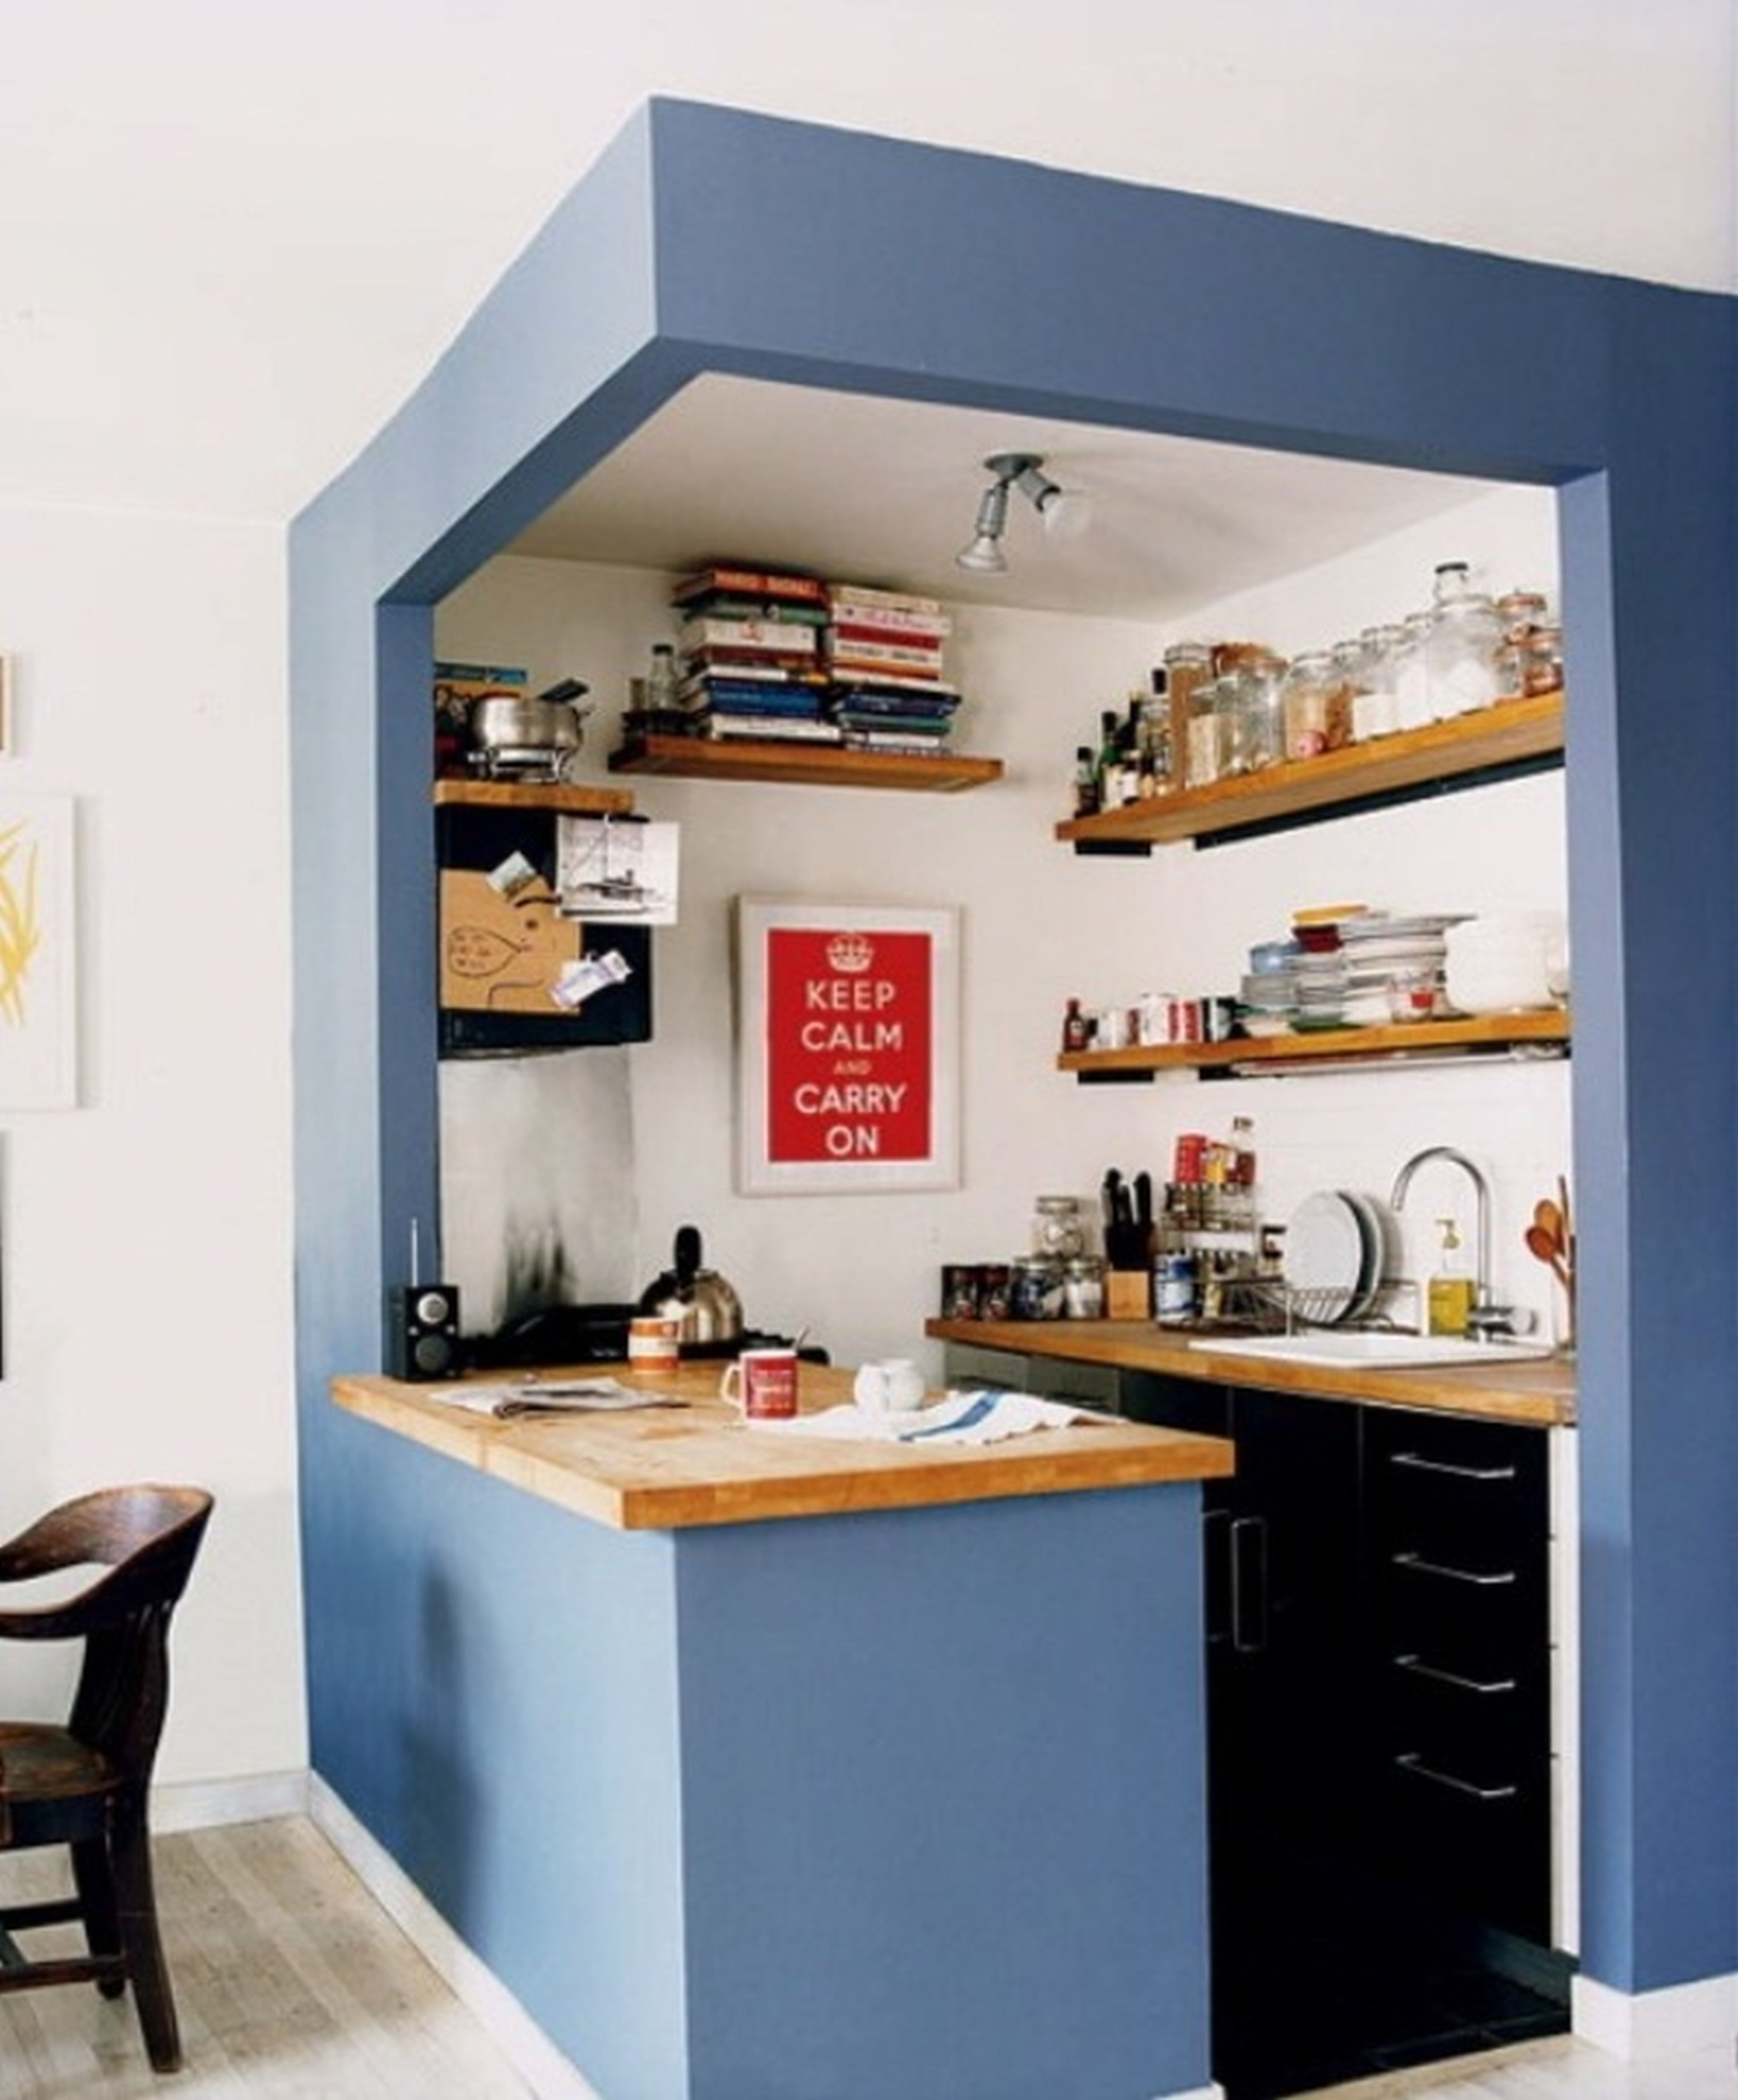 Beau Kitchen Creative Tiny Kitchen Ideas Black High Gloss Cabinet Butcher Block  Countertop Wooden Floating Shelf Keep